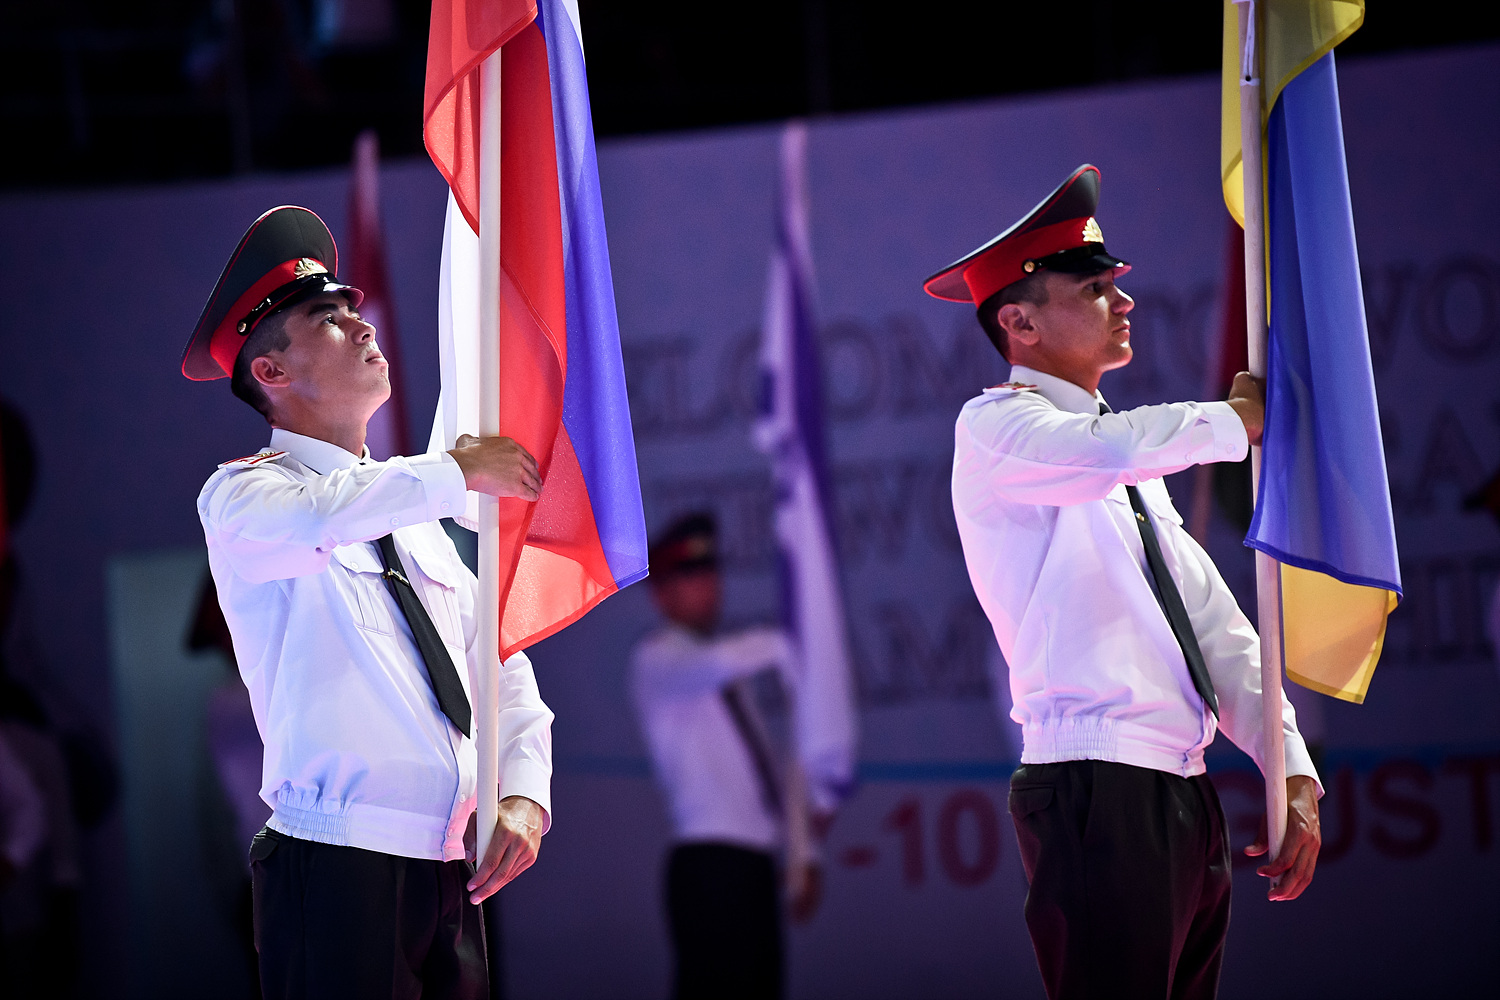 070819 - WORLD CHAMPIONSHIP CADETS 2019 - CEREMONY-10